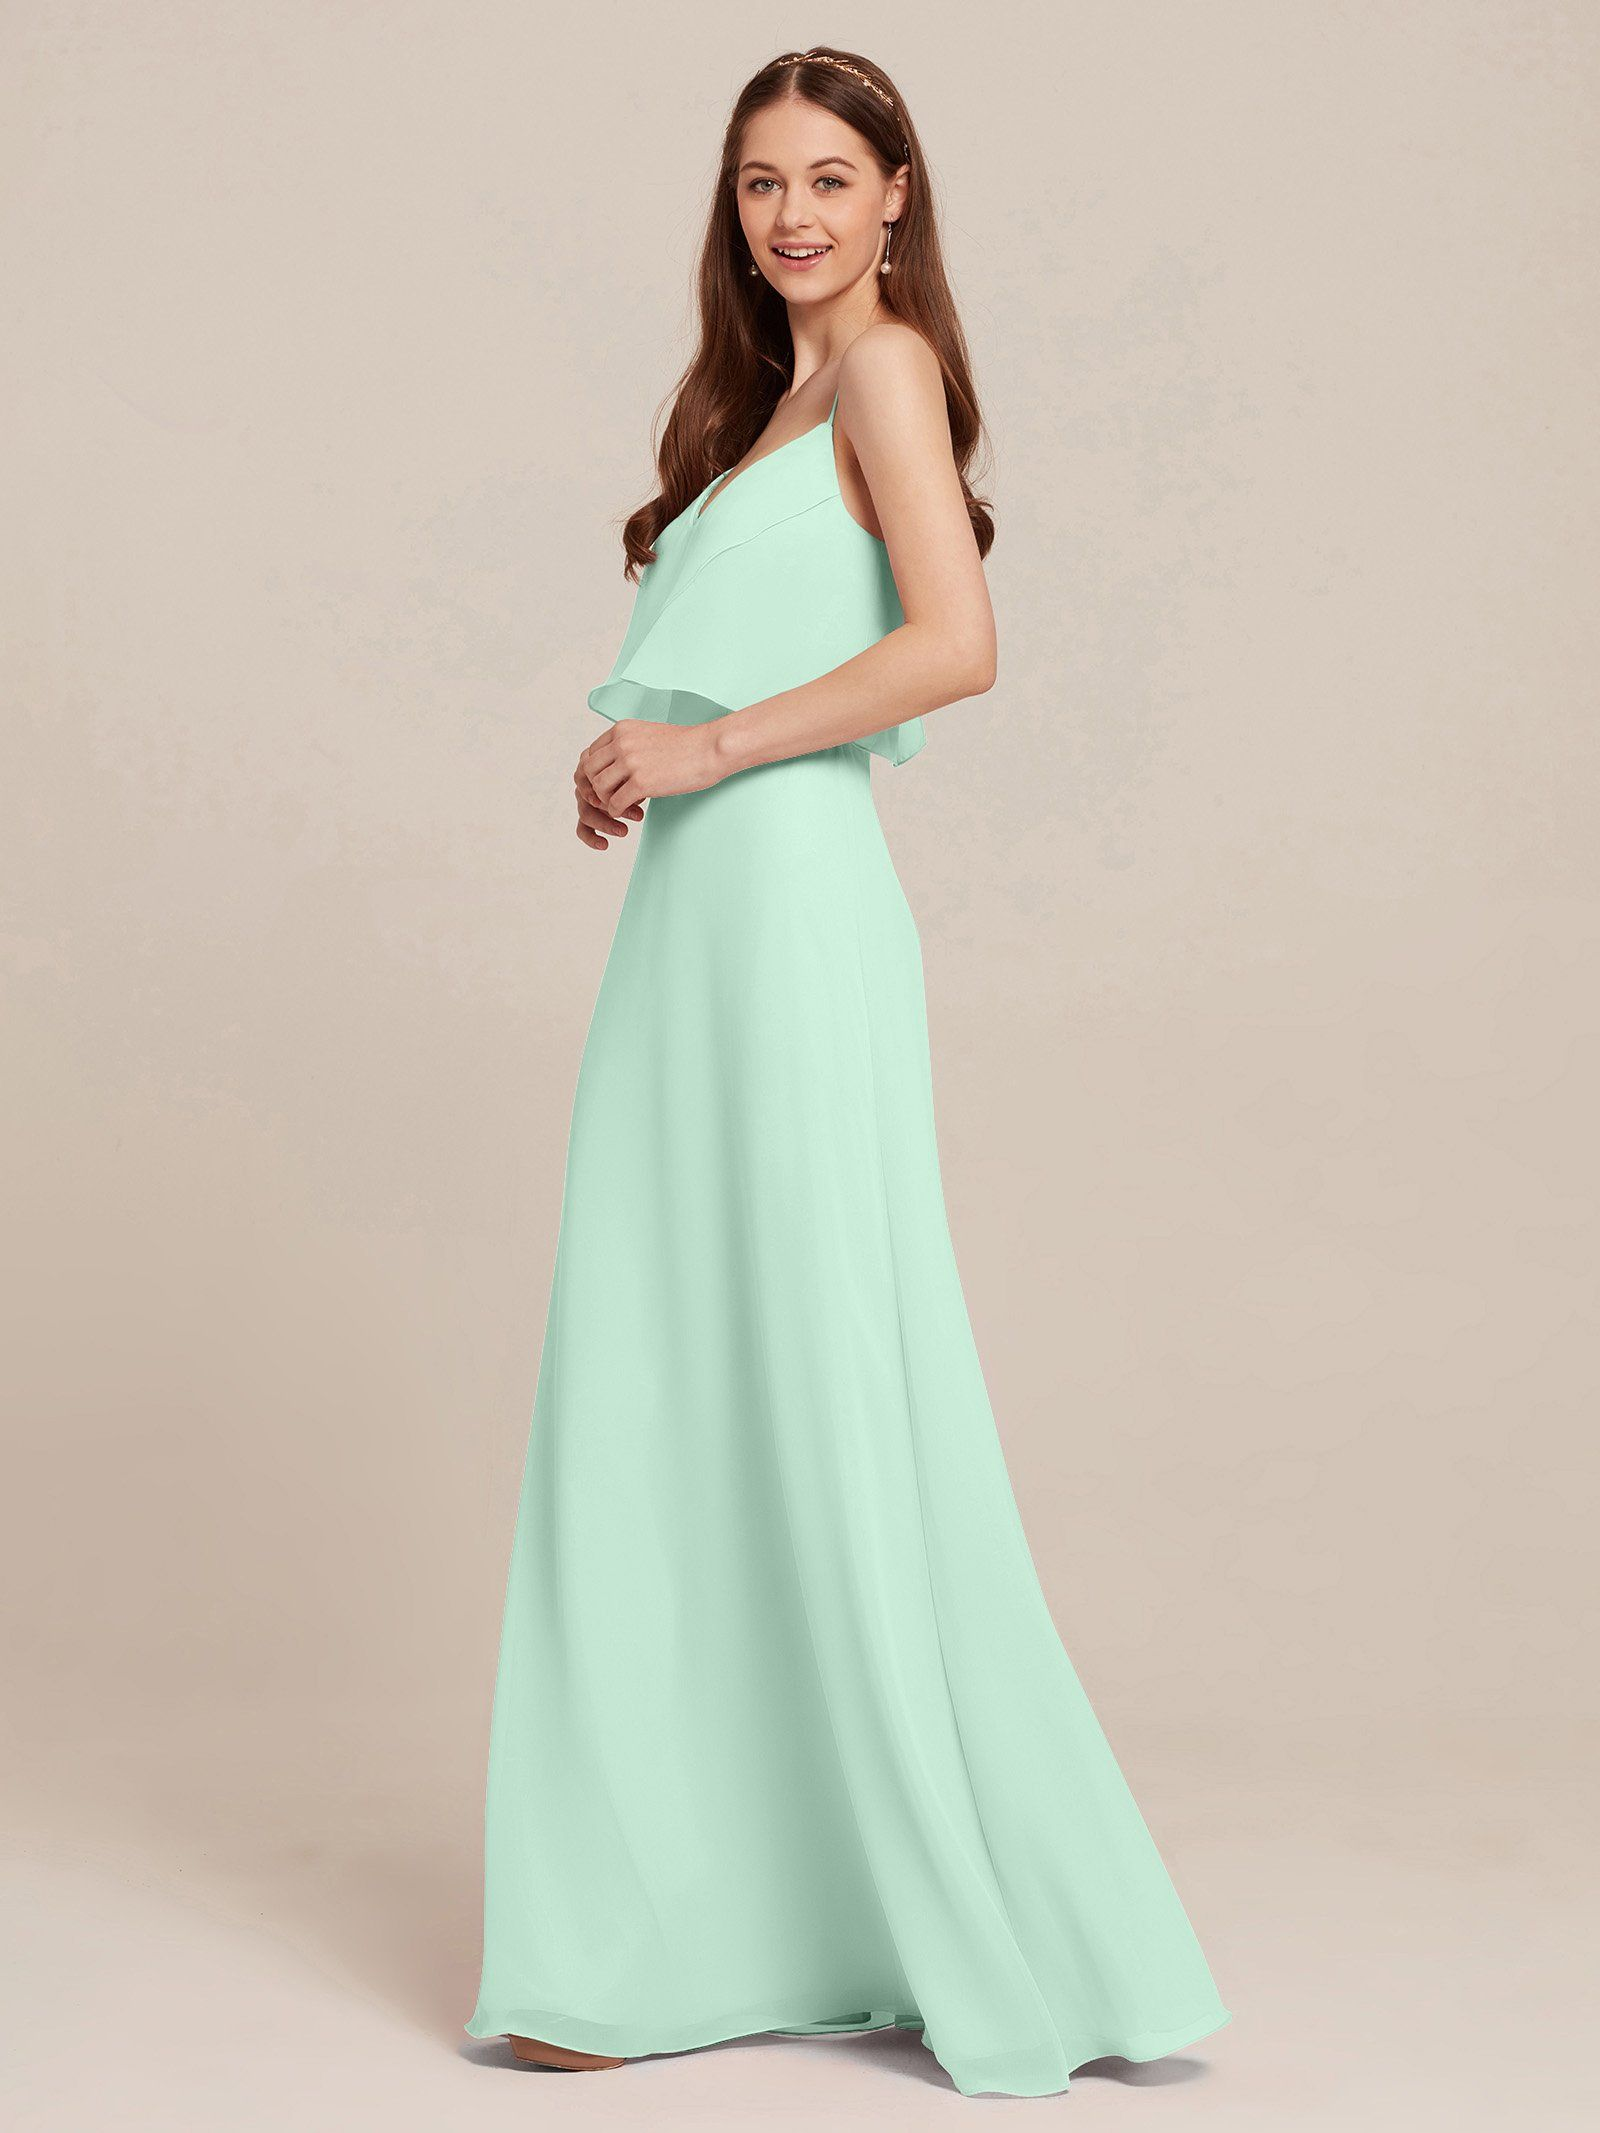 150122423e7 Maternity Outfits - oversized maternity maxi dress   AWEI Bridesmaid Dress  Chiffon A Line Prom Party Gown Maxi Beach Summer Dress for Women Spaghetti  Strap ...